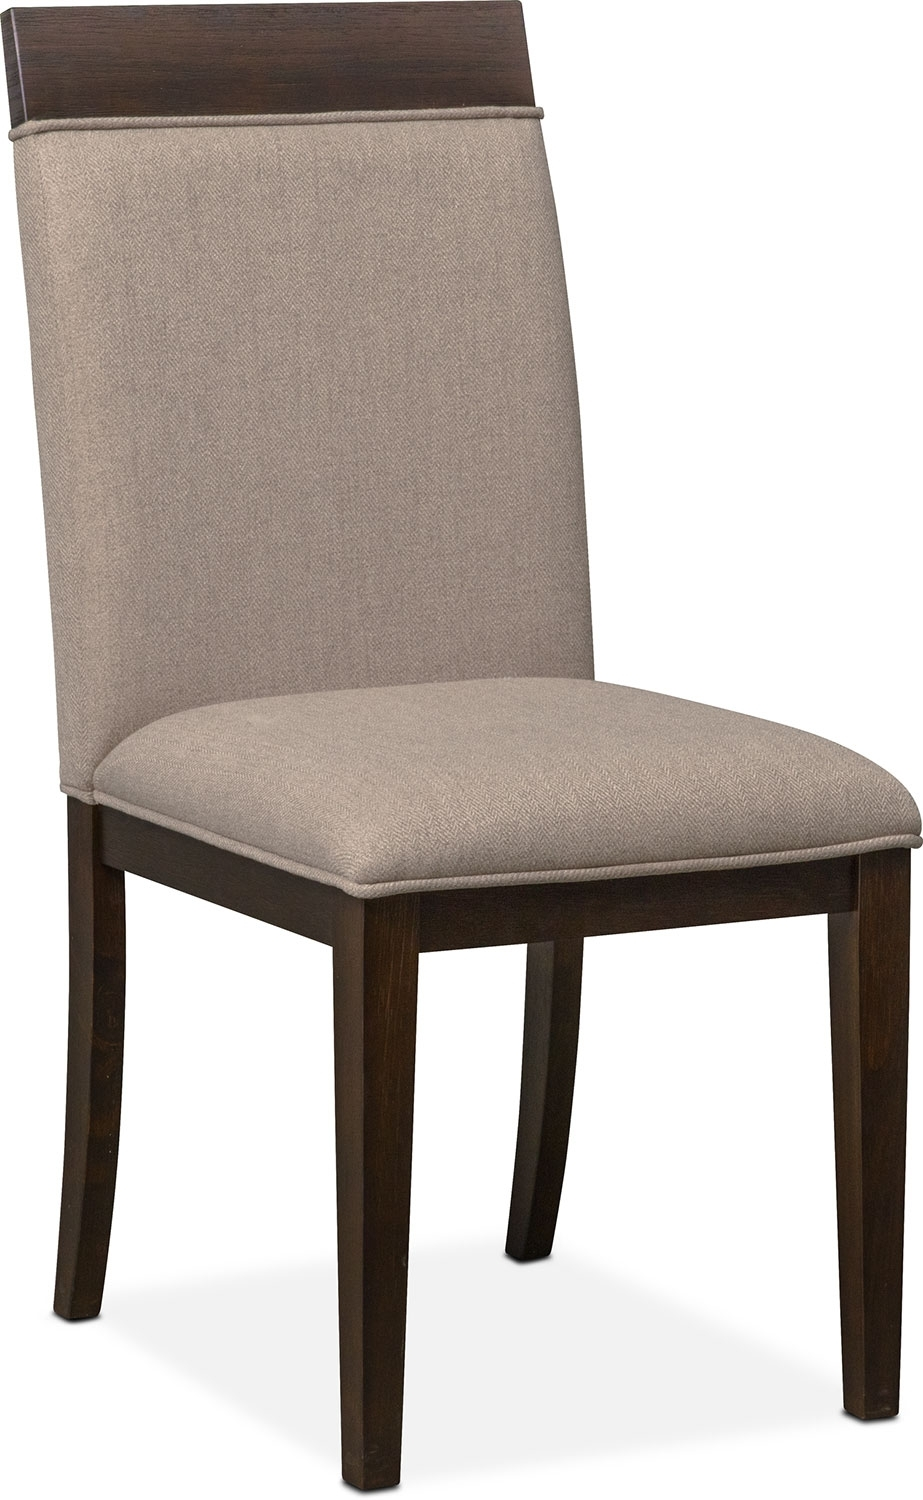 Gavin Side Chair – Brownstone | Value City Furniture And Mattresses Pertaining To Most Recent Gavin 7 Piece Dining Sets With Clint Side Chairs (Image 8 of 20)